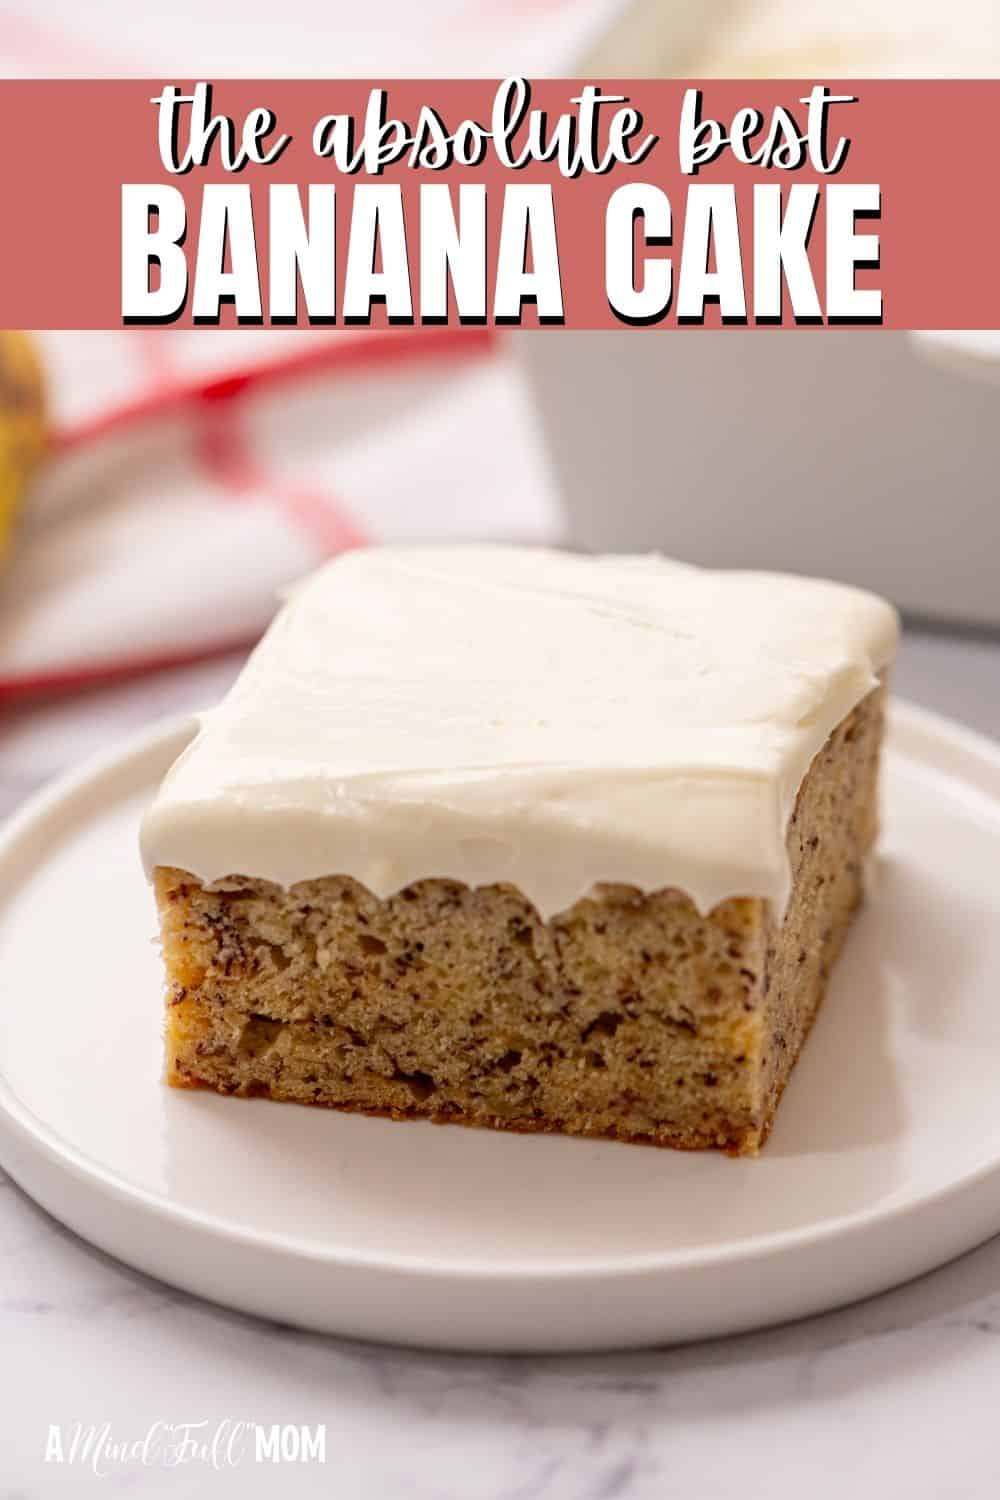 Soft, light, and full of banana flavor, this Sour Cream Banana Cake is the BEST banana cake ever! Finished with a thick layer of cream cheese icing, this easy recipe makes an irresistible dessert!